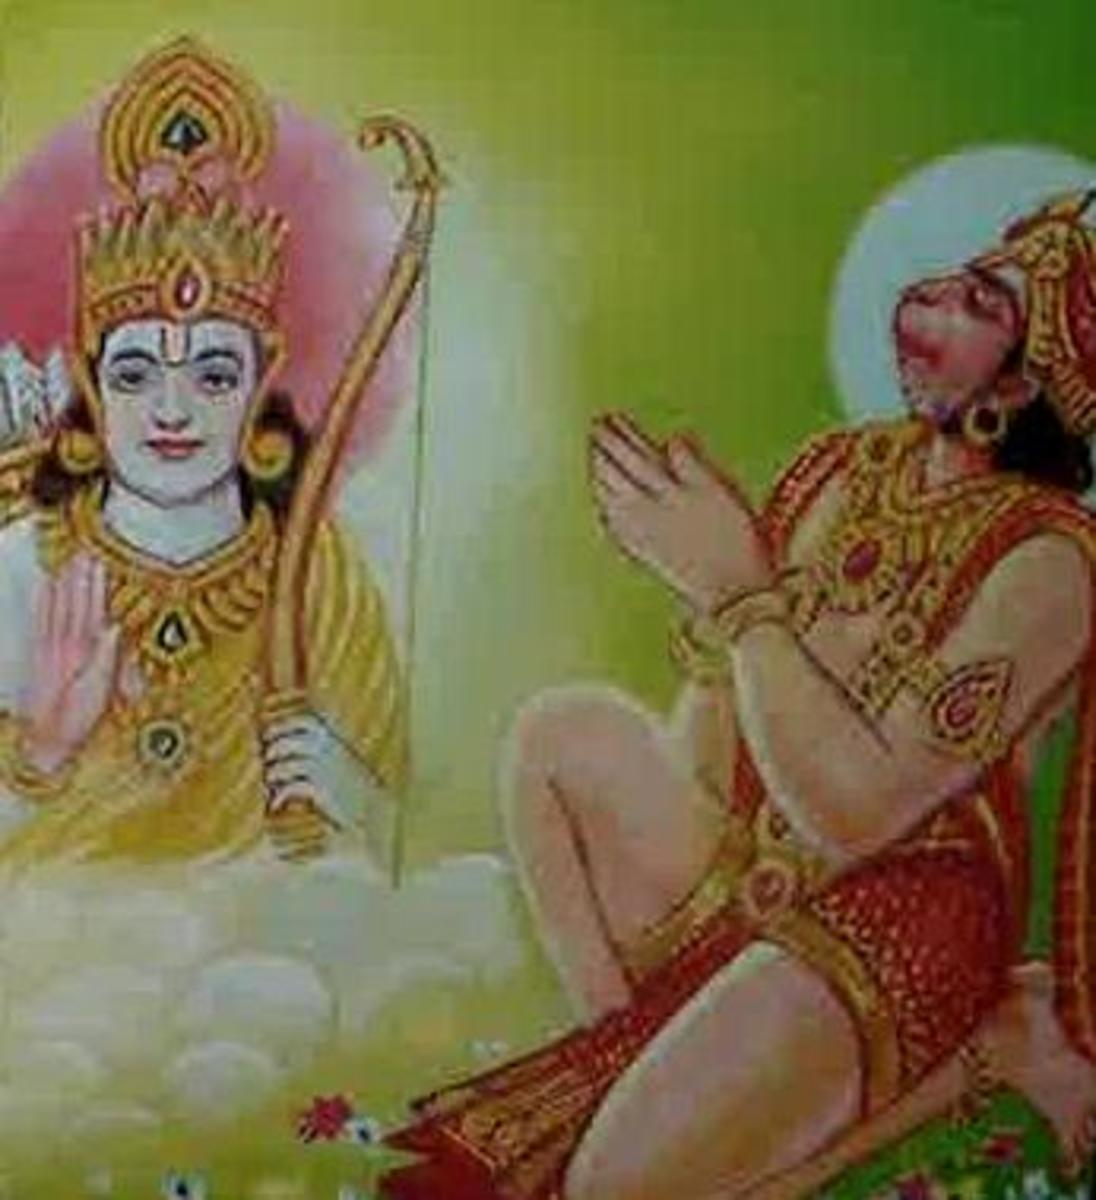 Picture depicting verse 34 of the Hanuman Chalisa